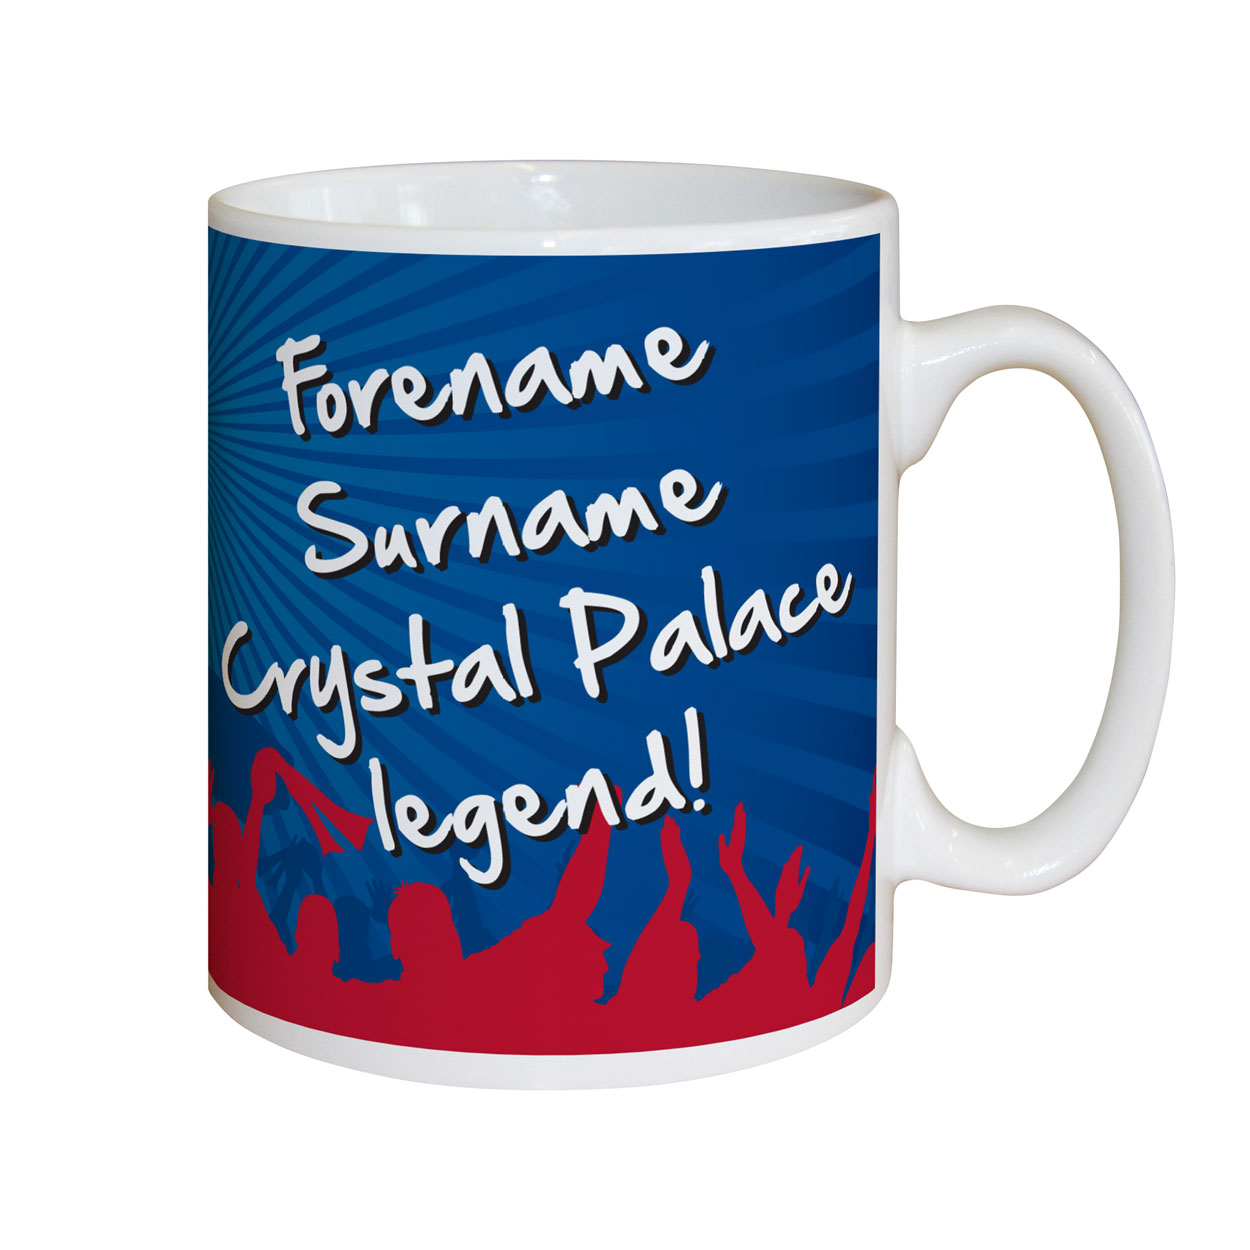 Crystal Palace FC Legend Mug